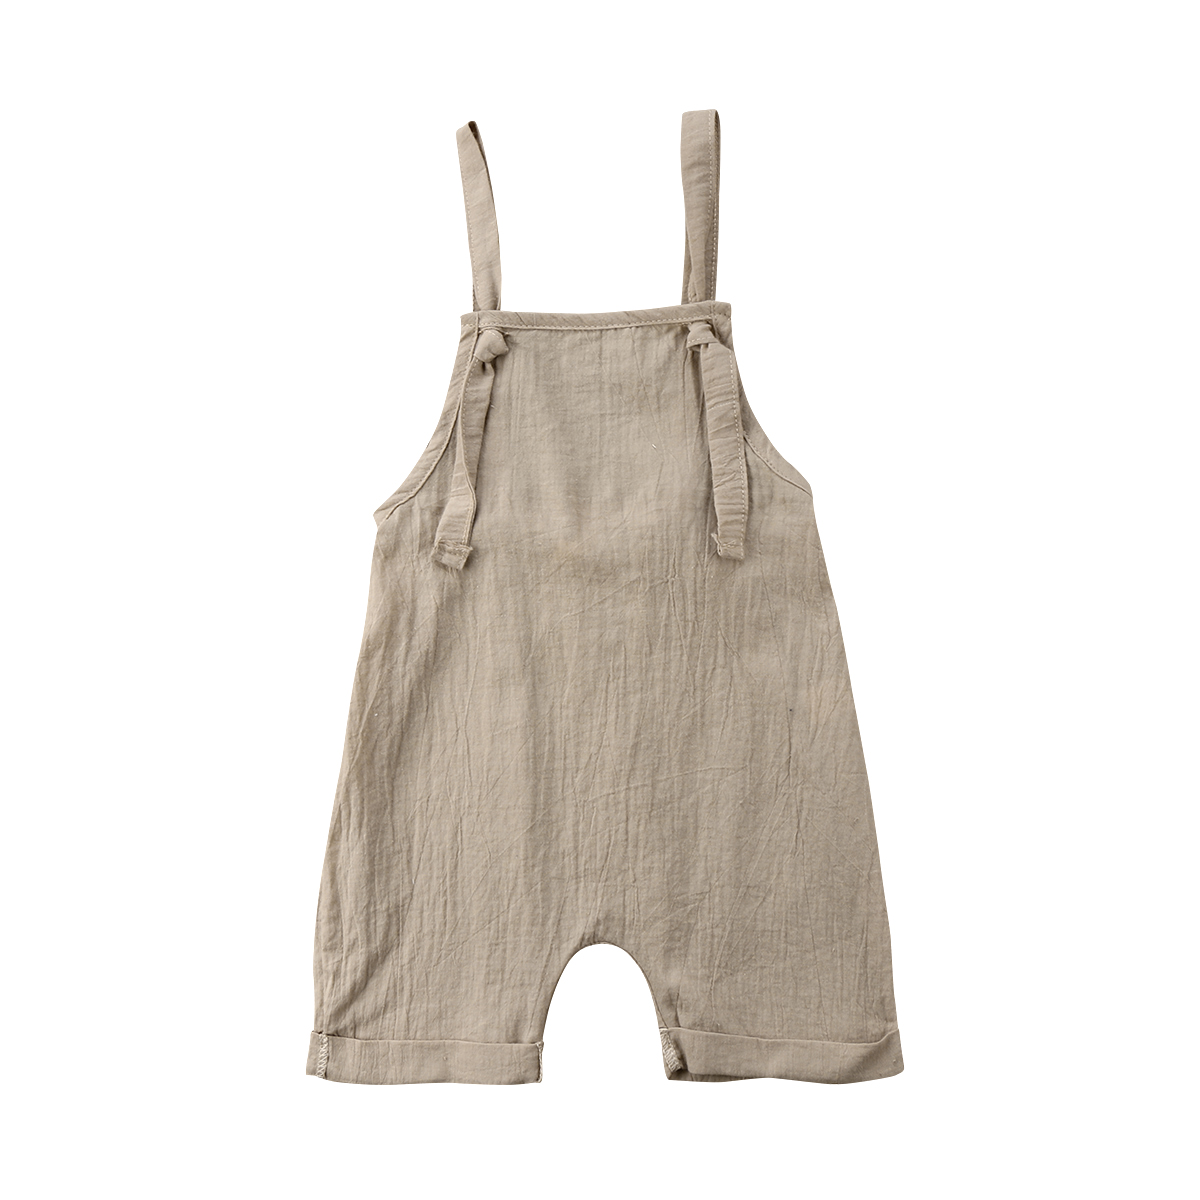 2018 Brand New Toddler Infant Newborn Kid Boy Girl Bib Pants   Romper   Jumpsuit Playsuit Outfit Solid Summer Clothes 0-3T